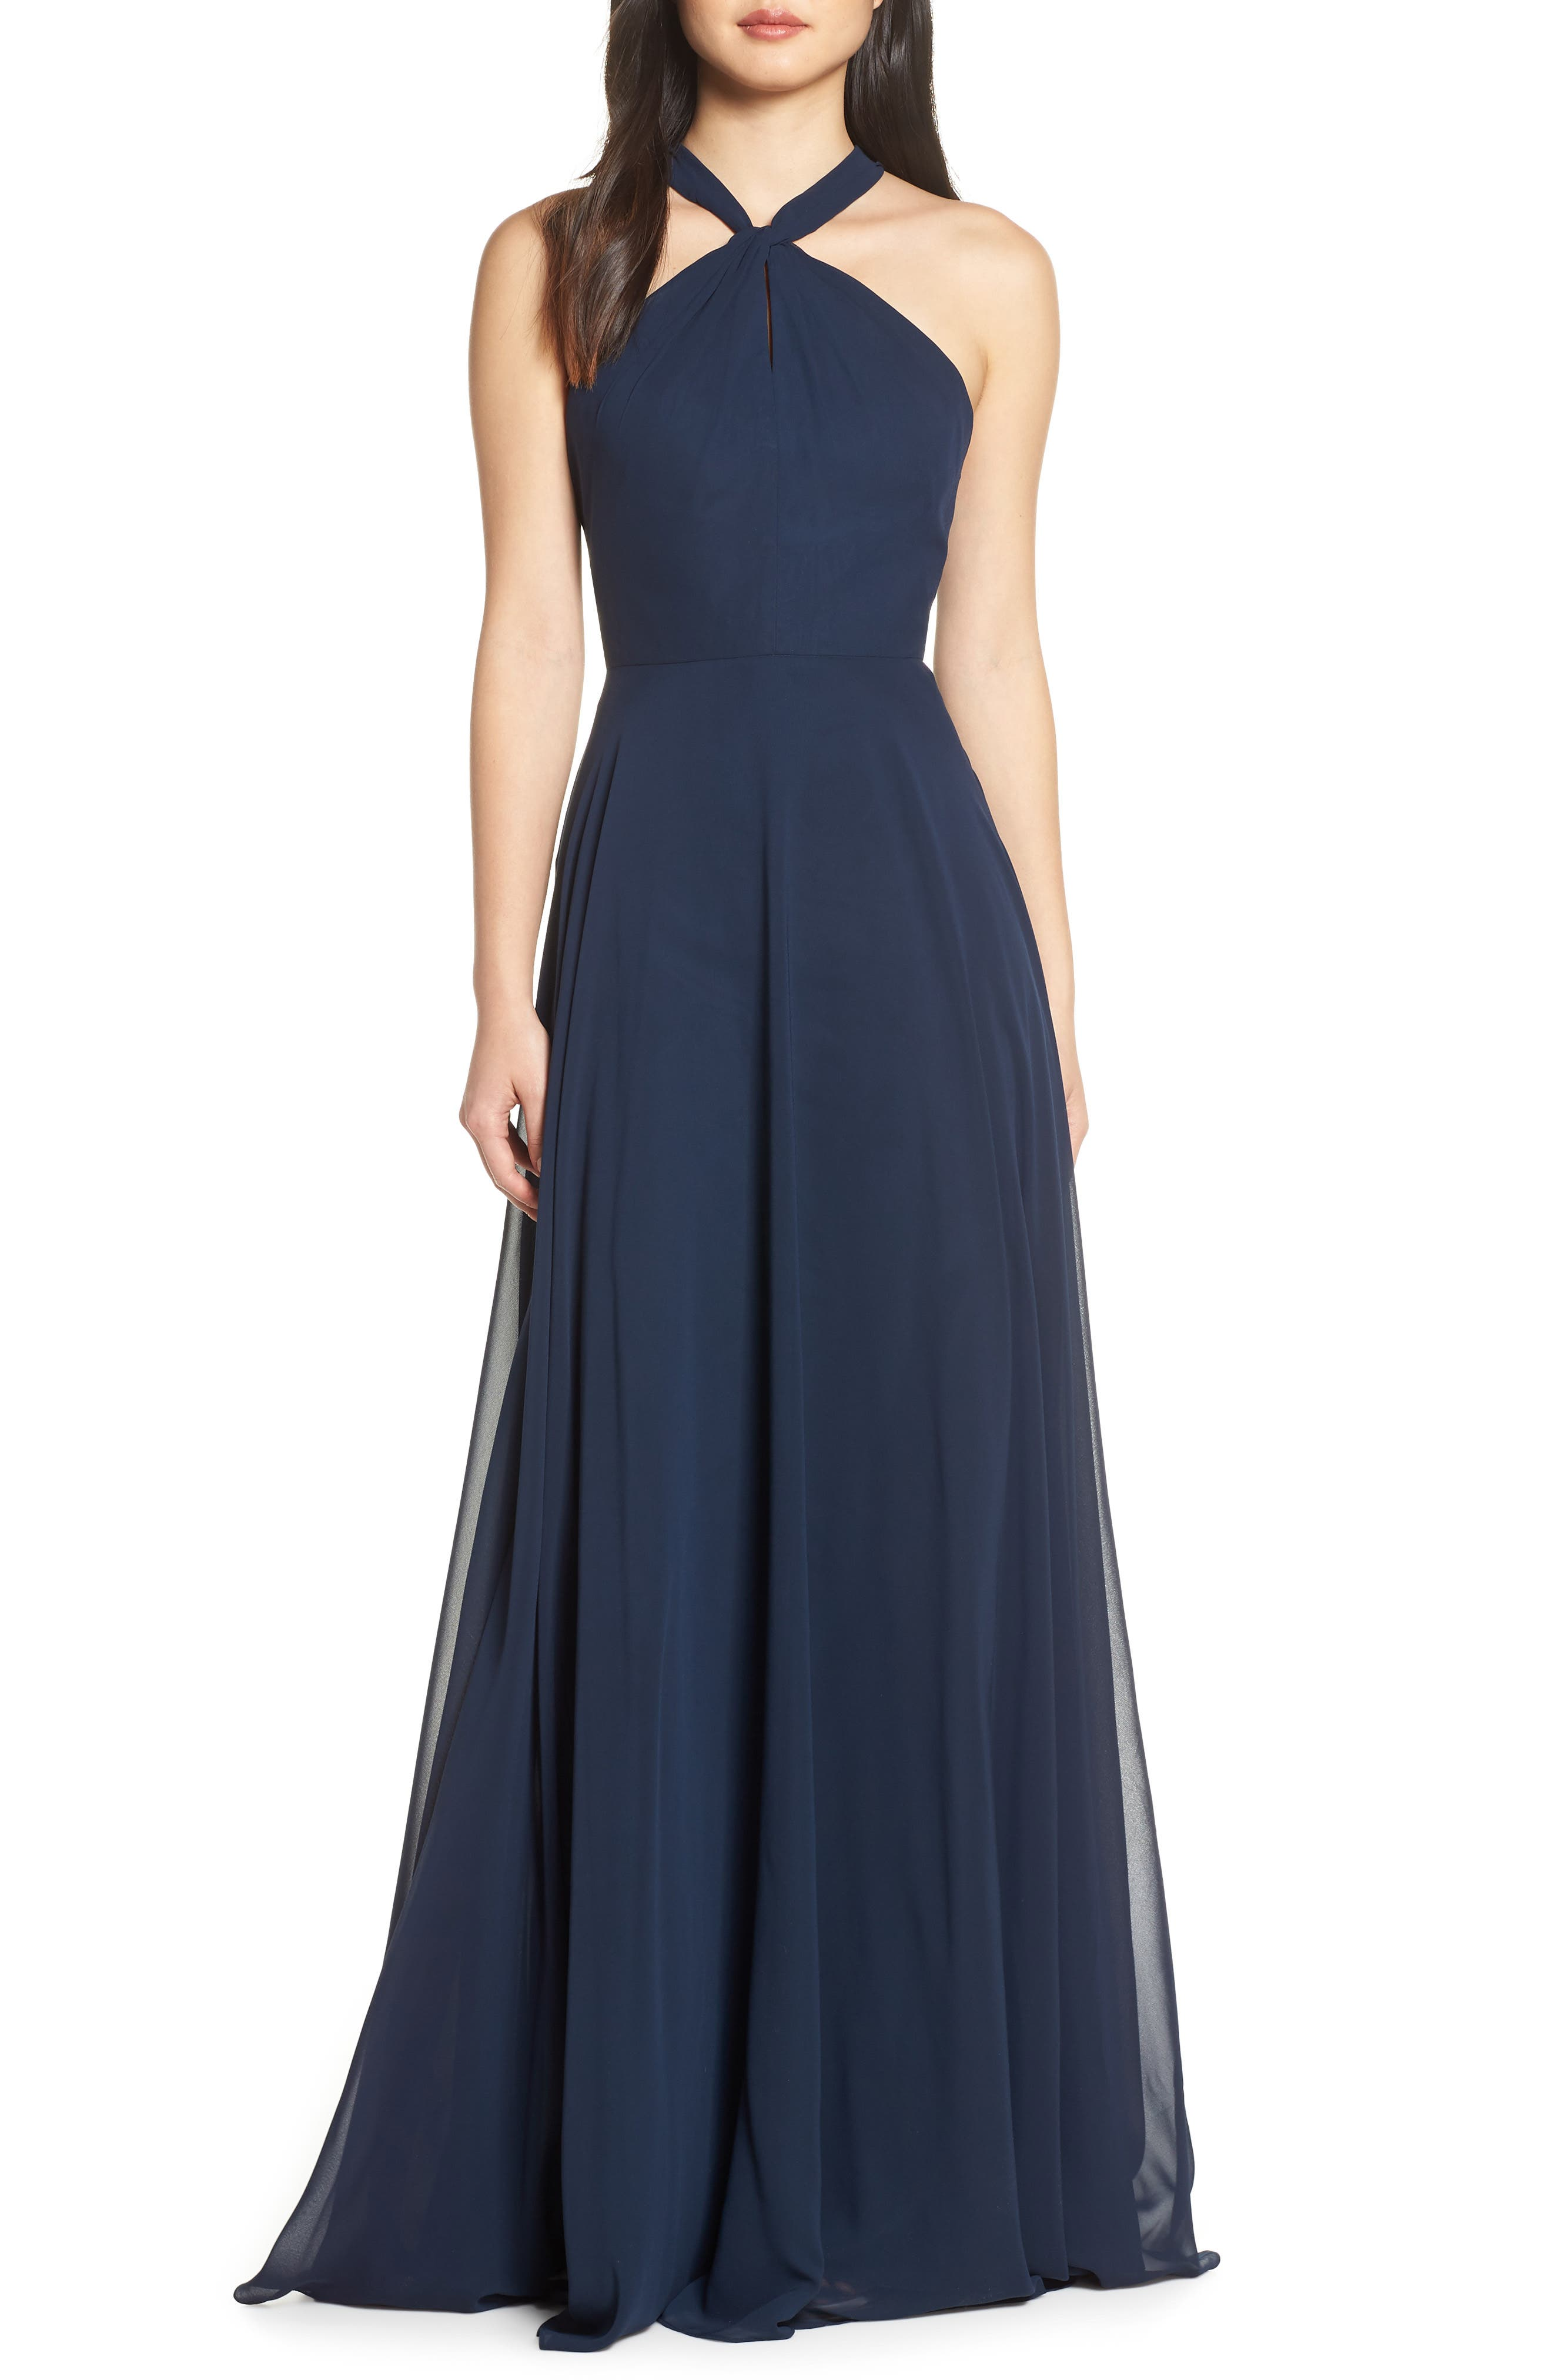 JENNY YOO, Halle Halter Evening Dress, Main thumbnail 1, color, NAVY